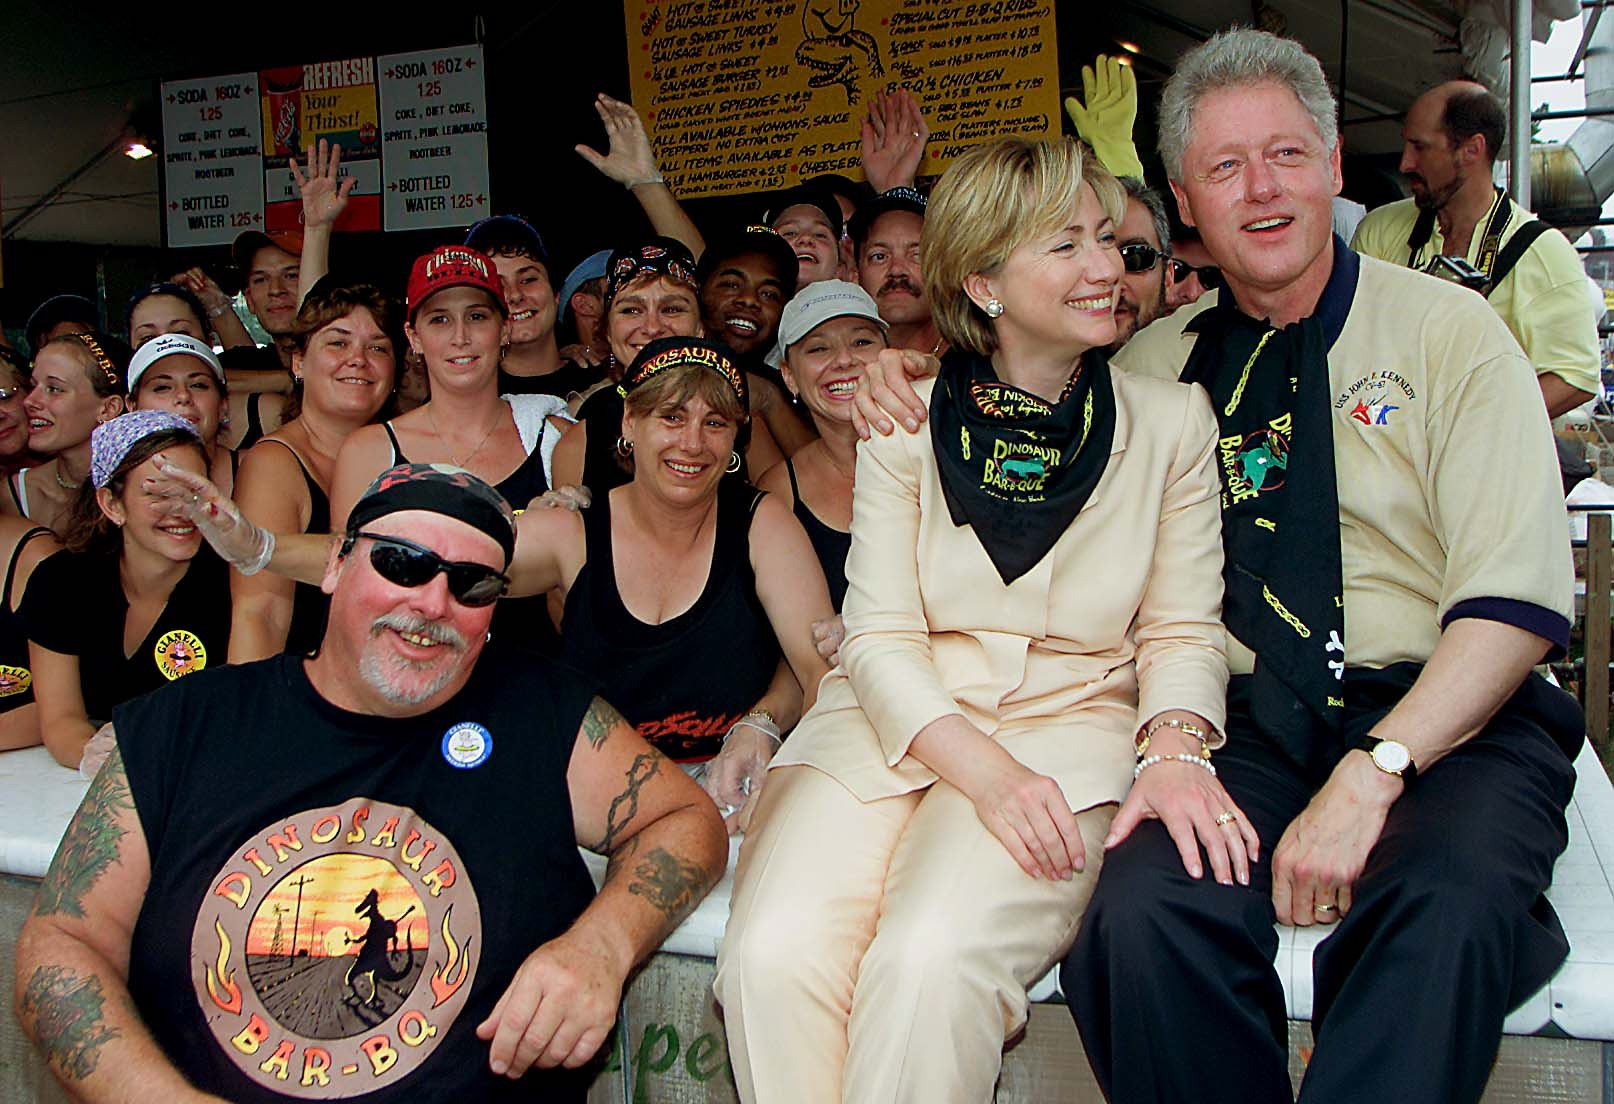 Senatorial candidate for New York and First Lady Hillary Rodham Clinton with husband President Bill Clinton pose for photos with the workers at Gianelli's Italian Sausages at the State Fair on Sept. 2, 2000 in Syracuse, N.Y.